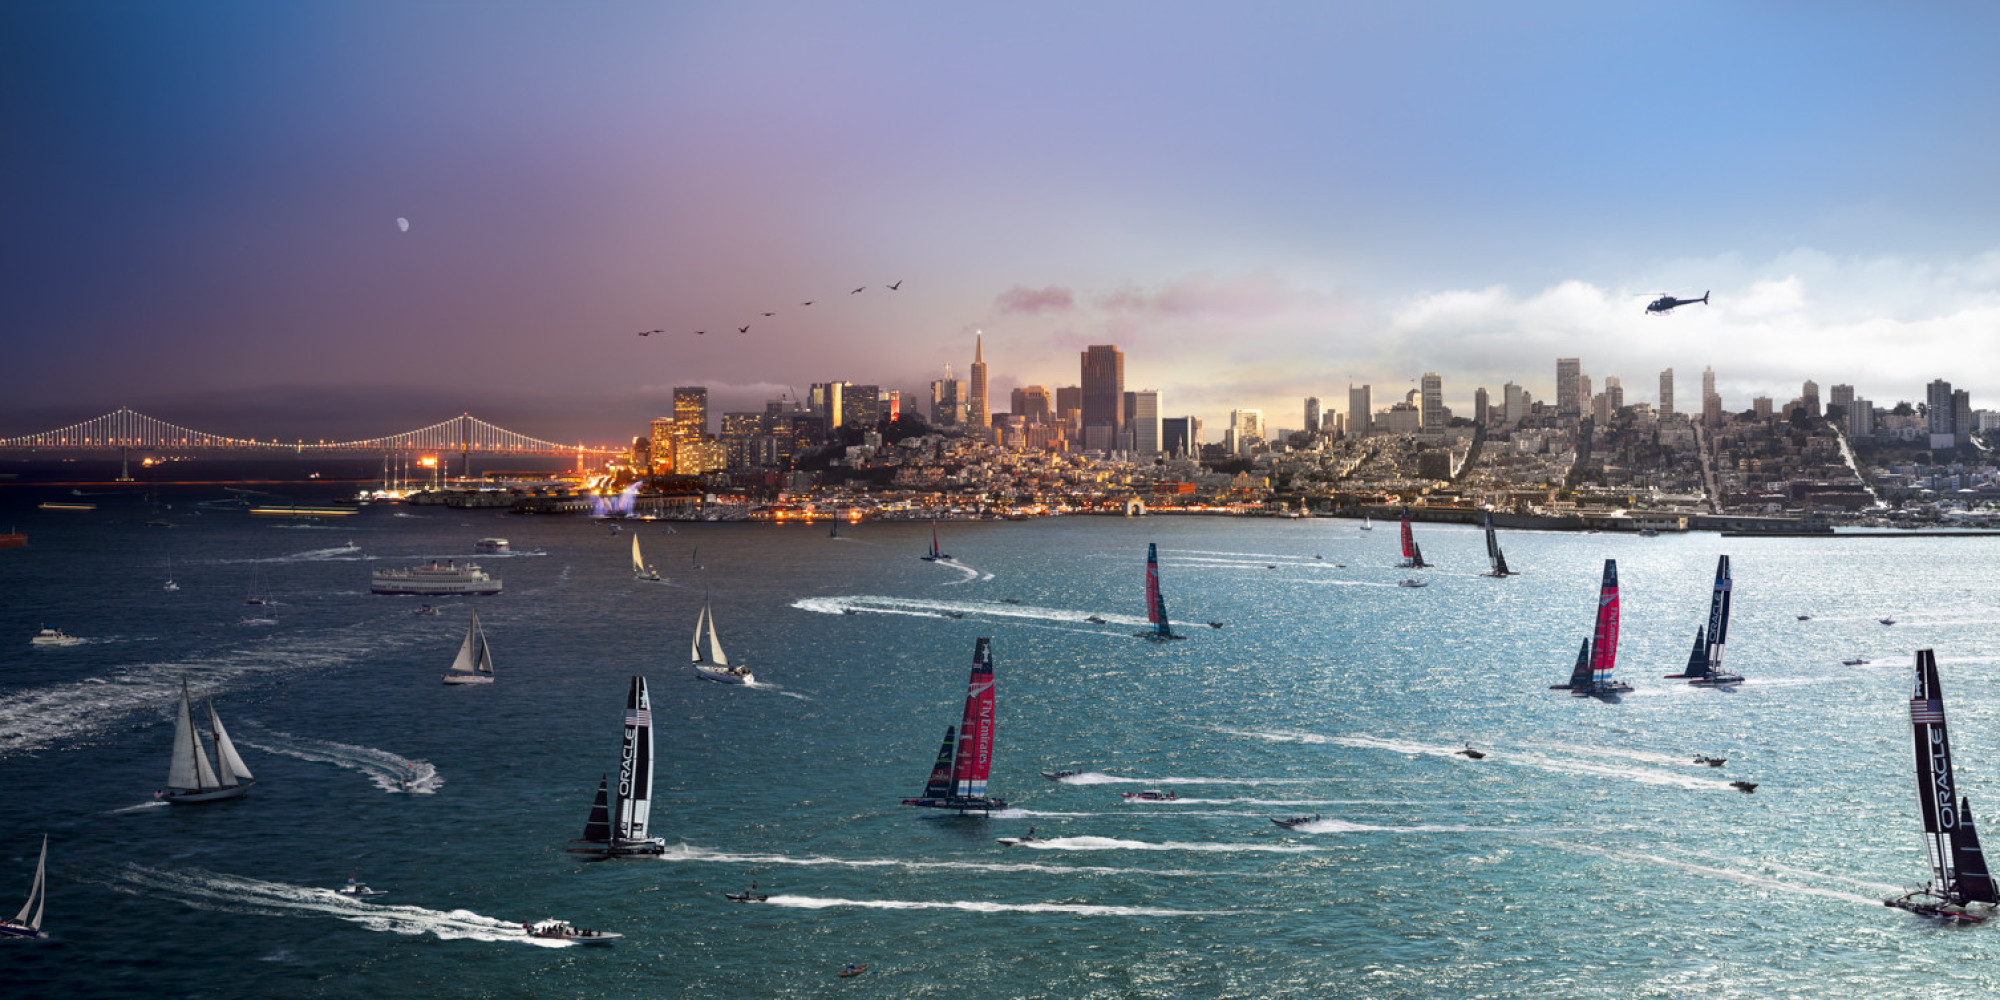 LOOK: This Photo Of San Francisco Is Absolutely Breathtaking